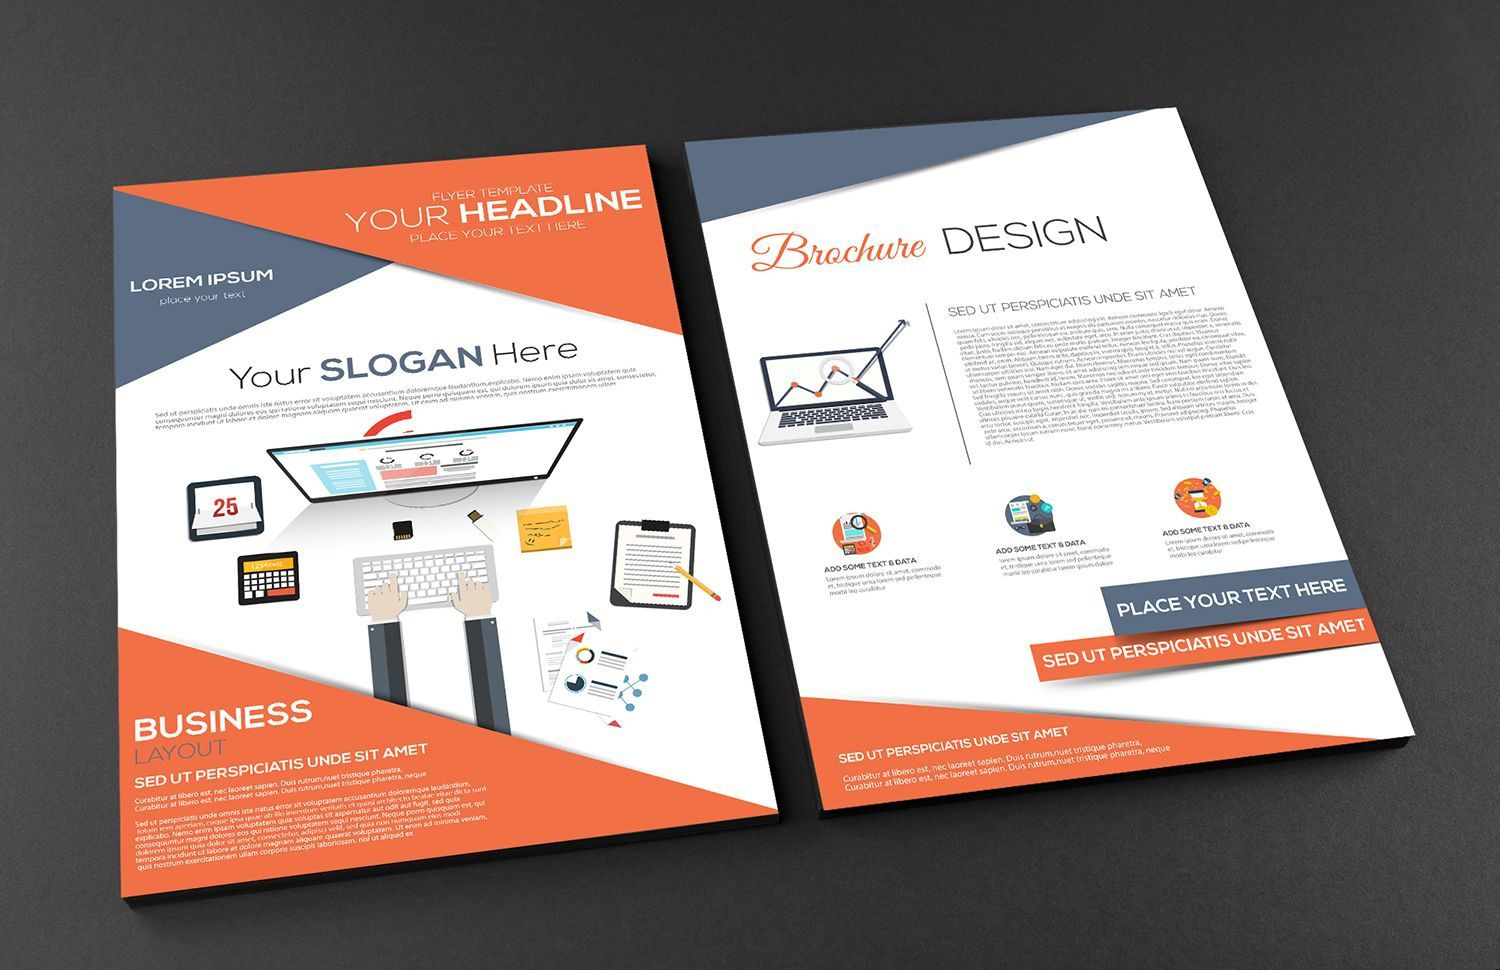 002 Impressive Free Brochure Template Psd File Front And Back Concept Full